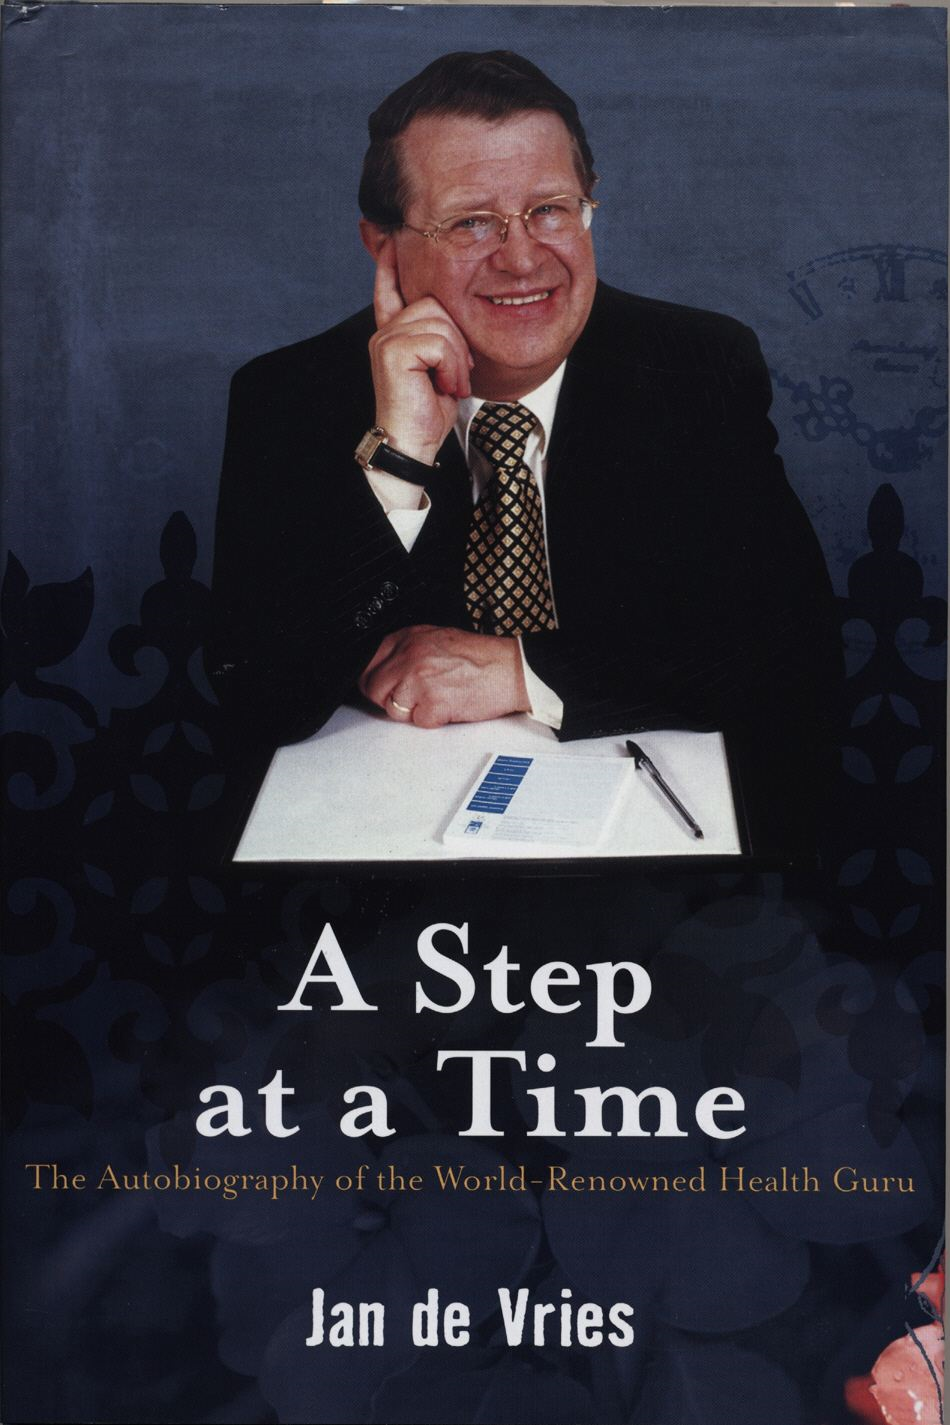 A Step at a Time The Autobiography of the World-Renowned Health Guru